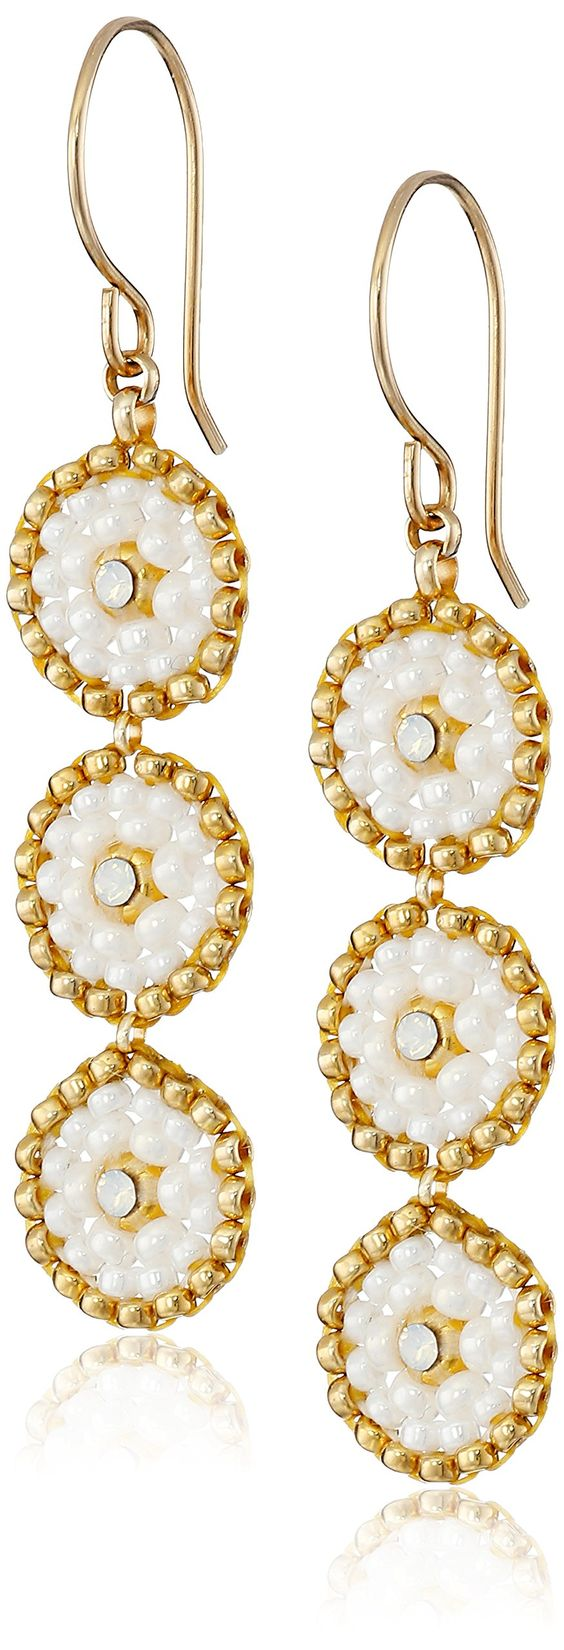 Amazon.com: Miguel Ases Swarovski and Cream Triple-Station Small Drop Earrings: Jewelry